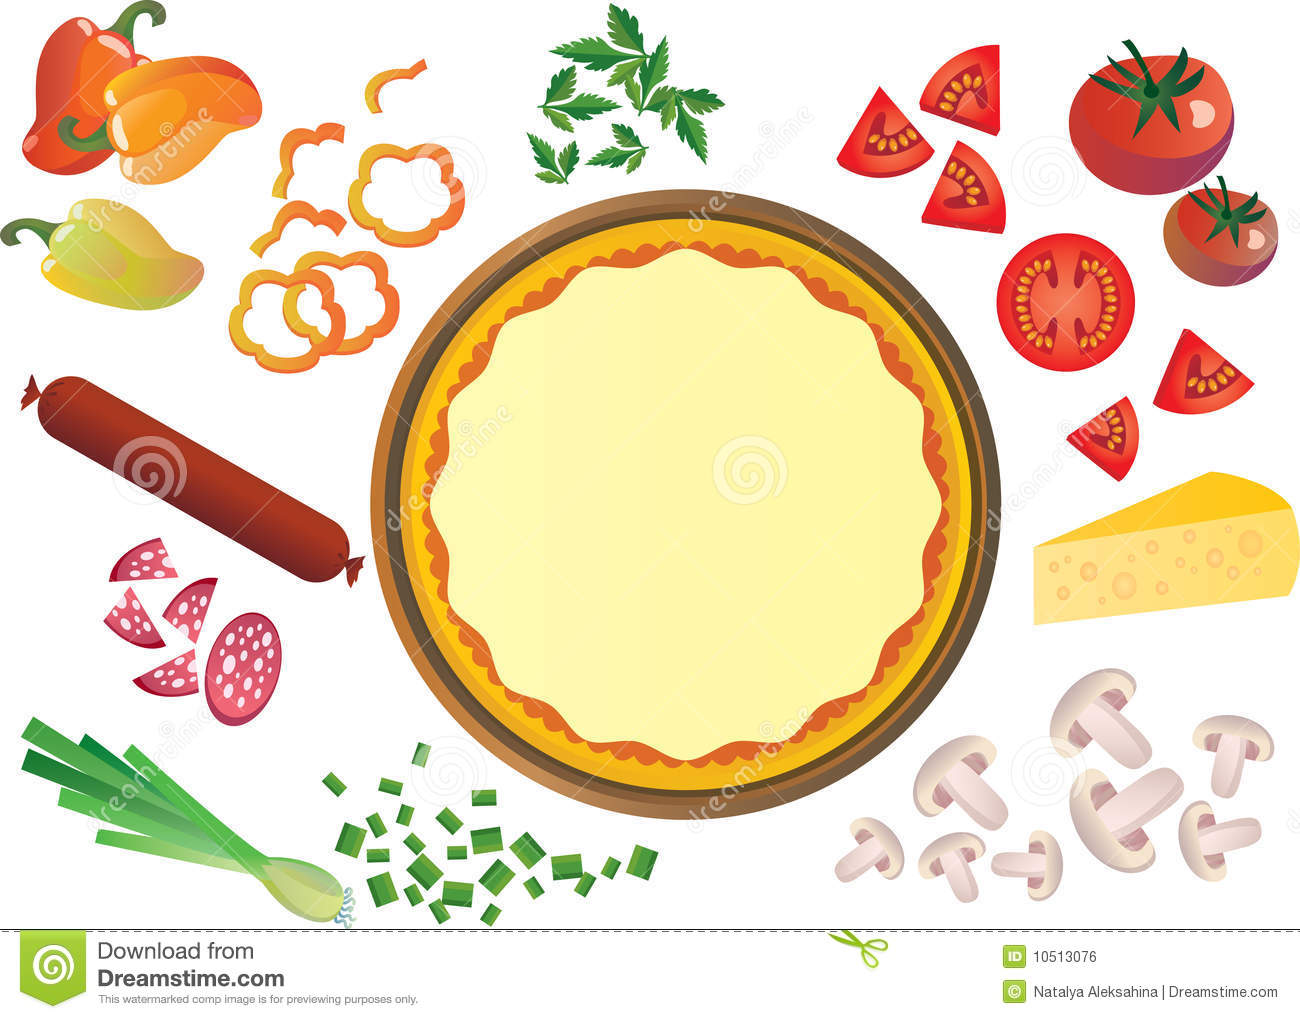 Pizza ingredients Royalty Free Stock Image